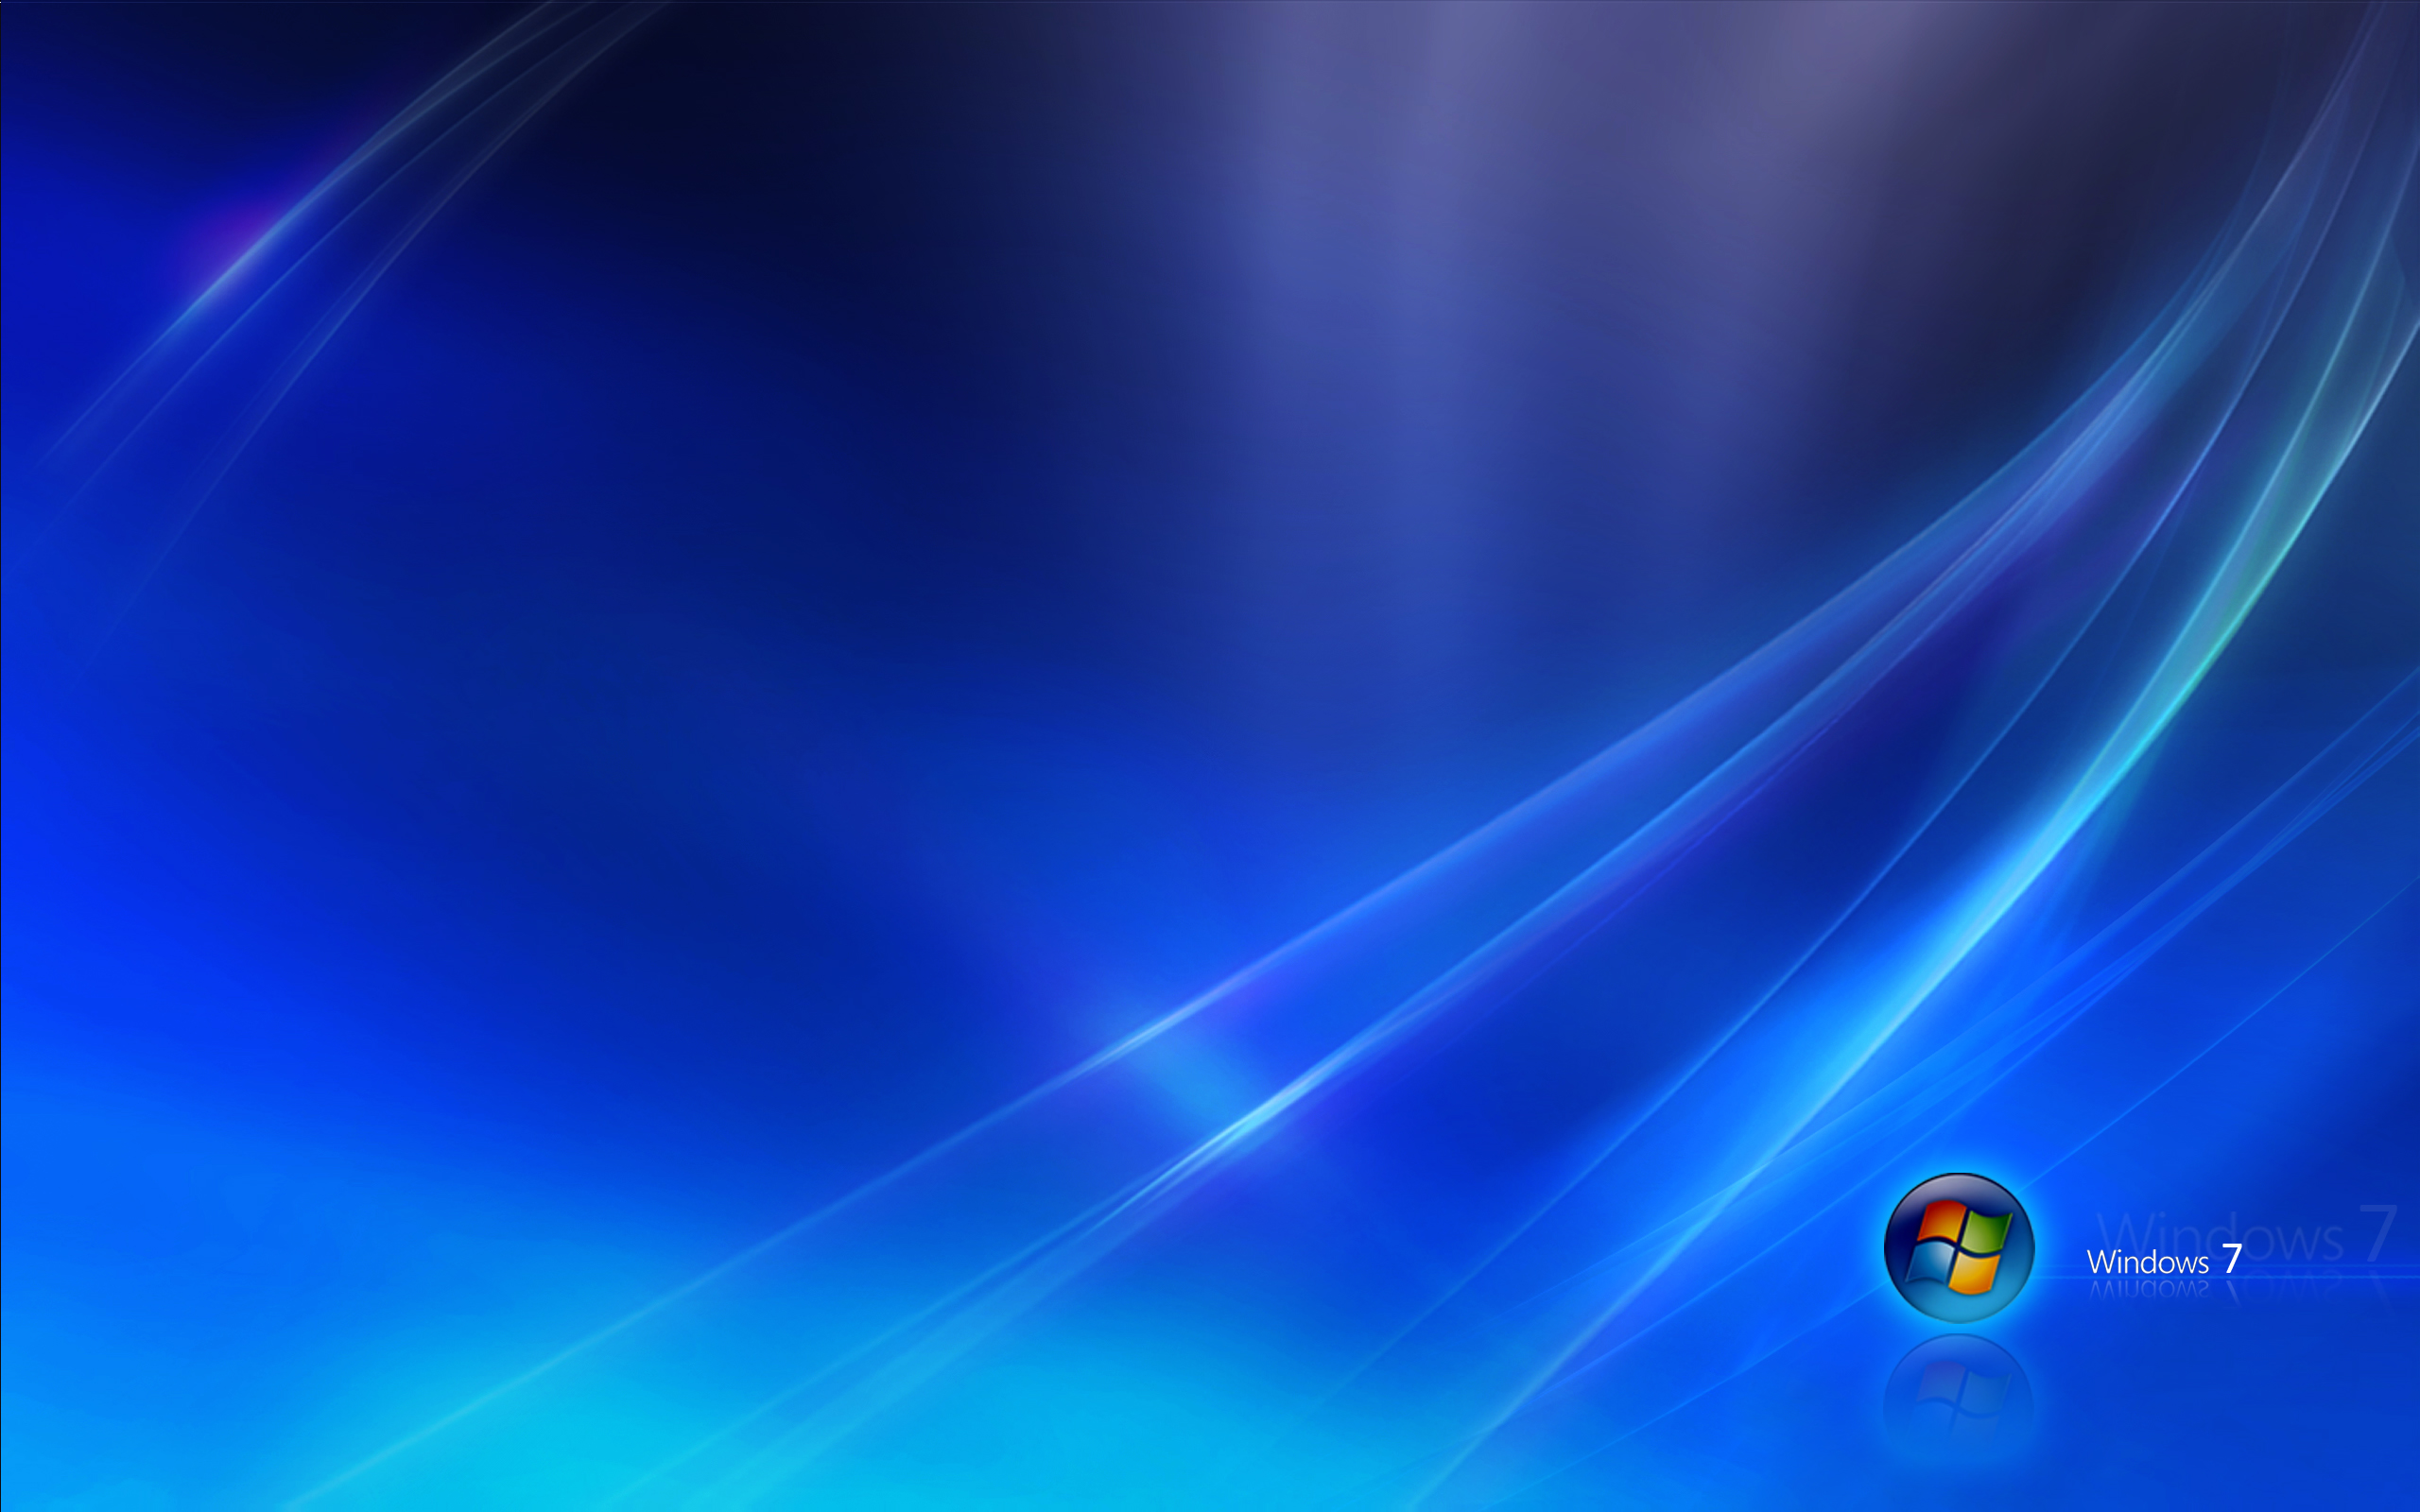 Windows 7 seven wallpaper fondos de escritorio wallpapers ImgStocks 2560x1600